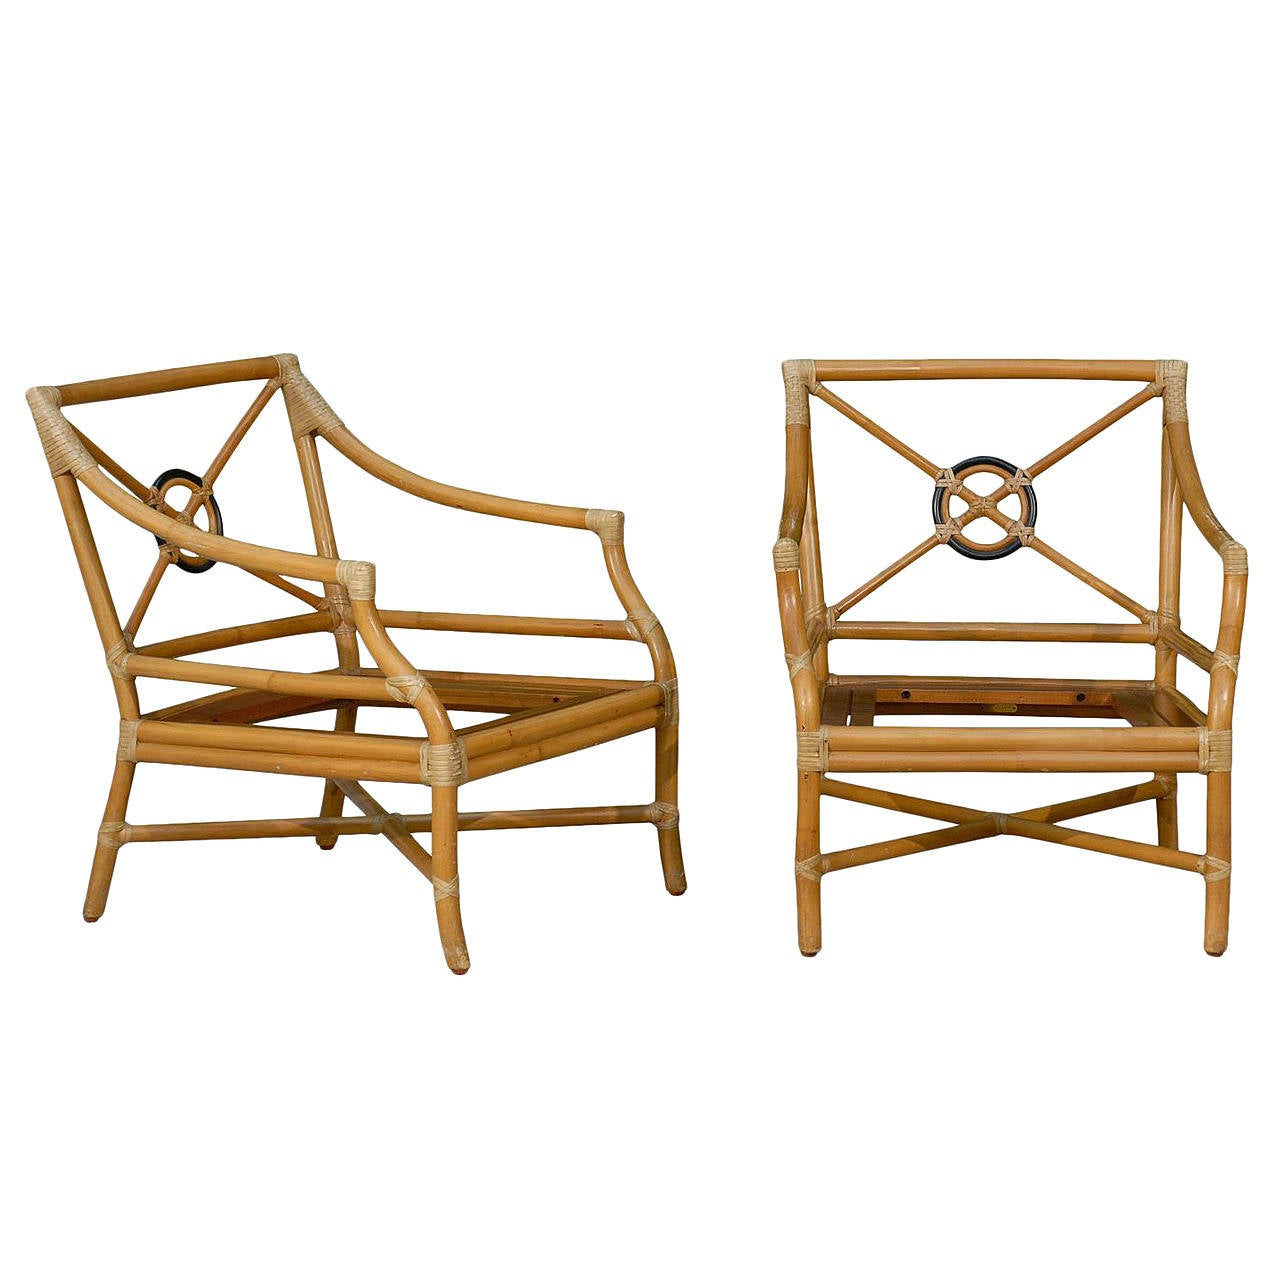 Beautiful Pair of Vintage Bamboo Tar Back Lounge Chairs by McGuire